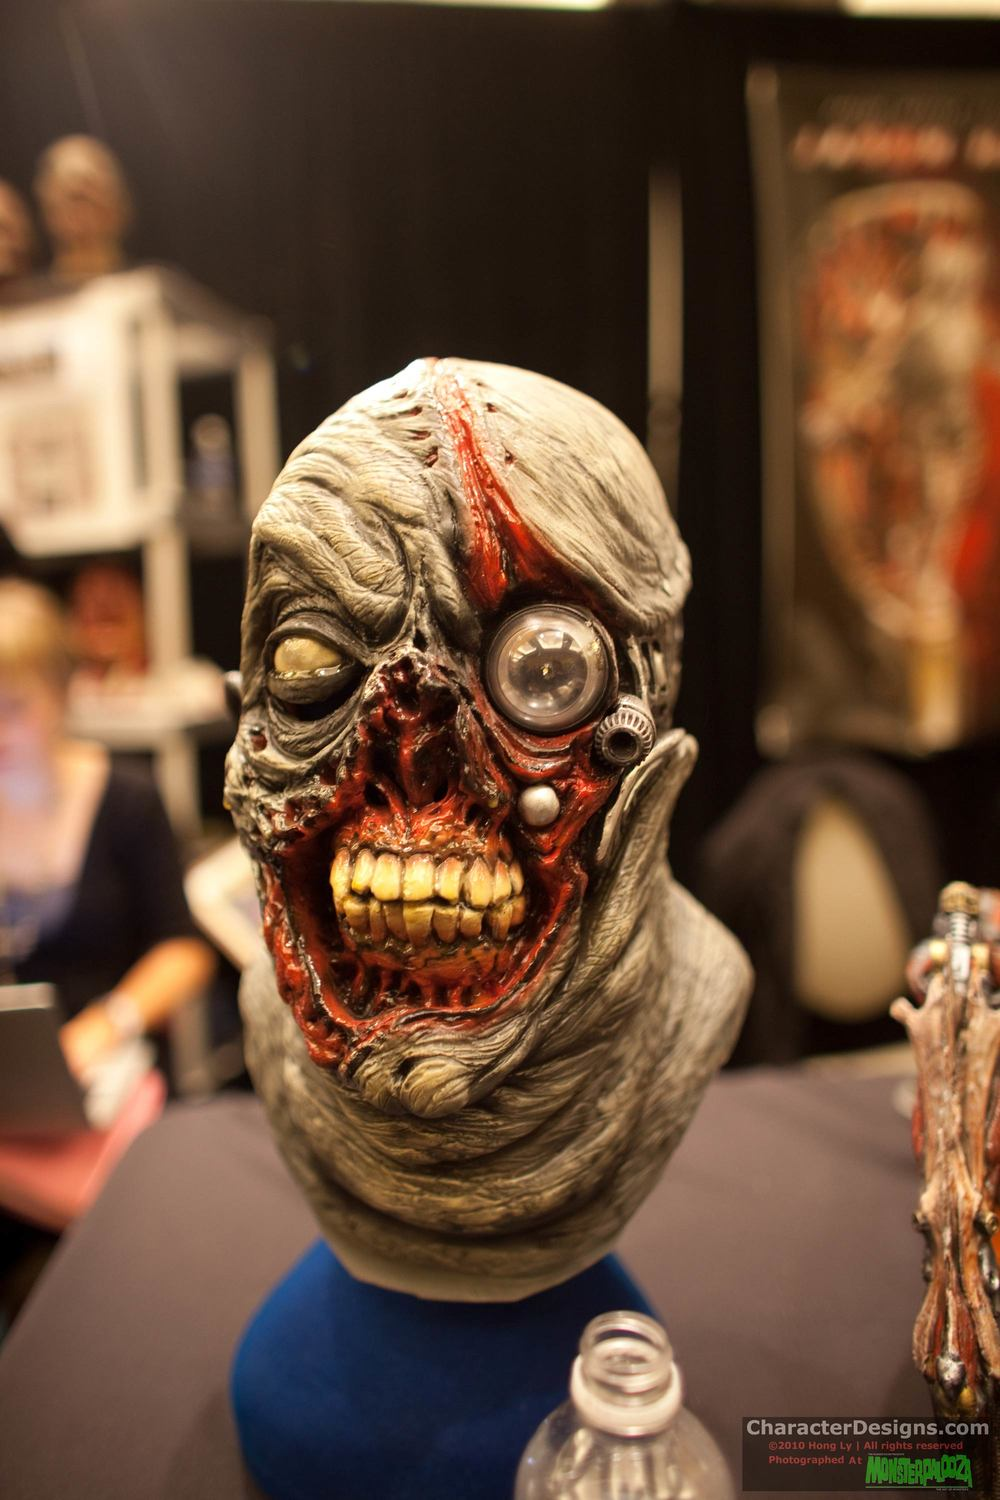 2010_Monsterpalooza_155.jpg